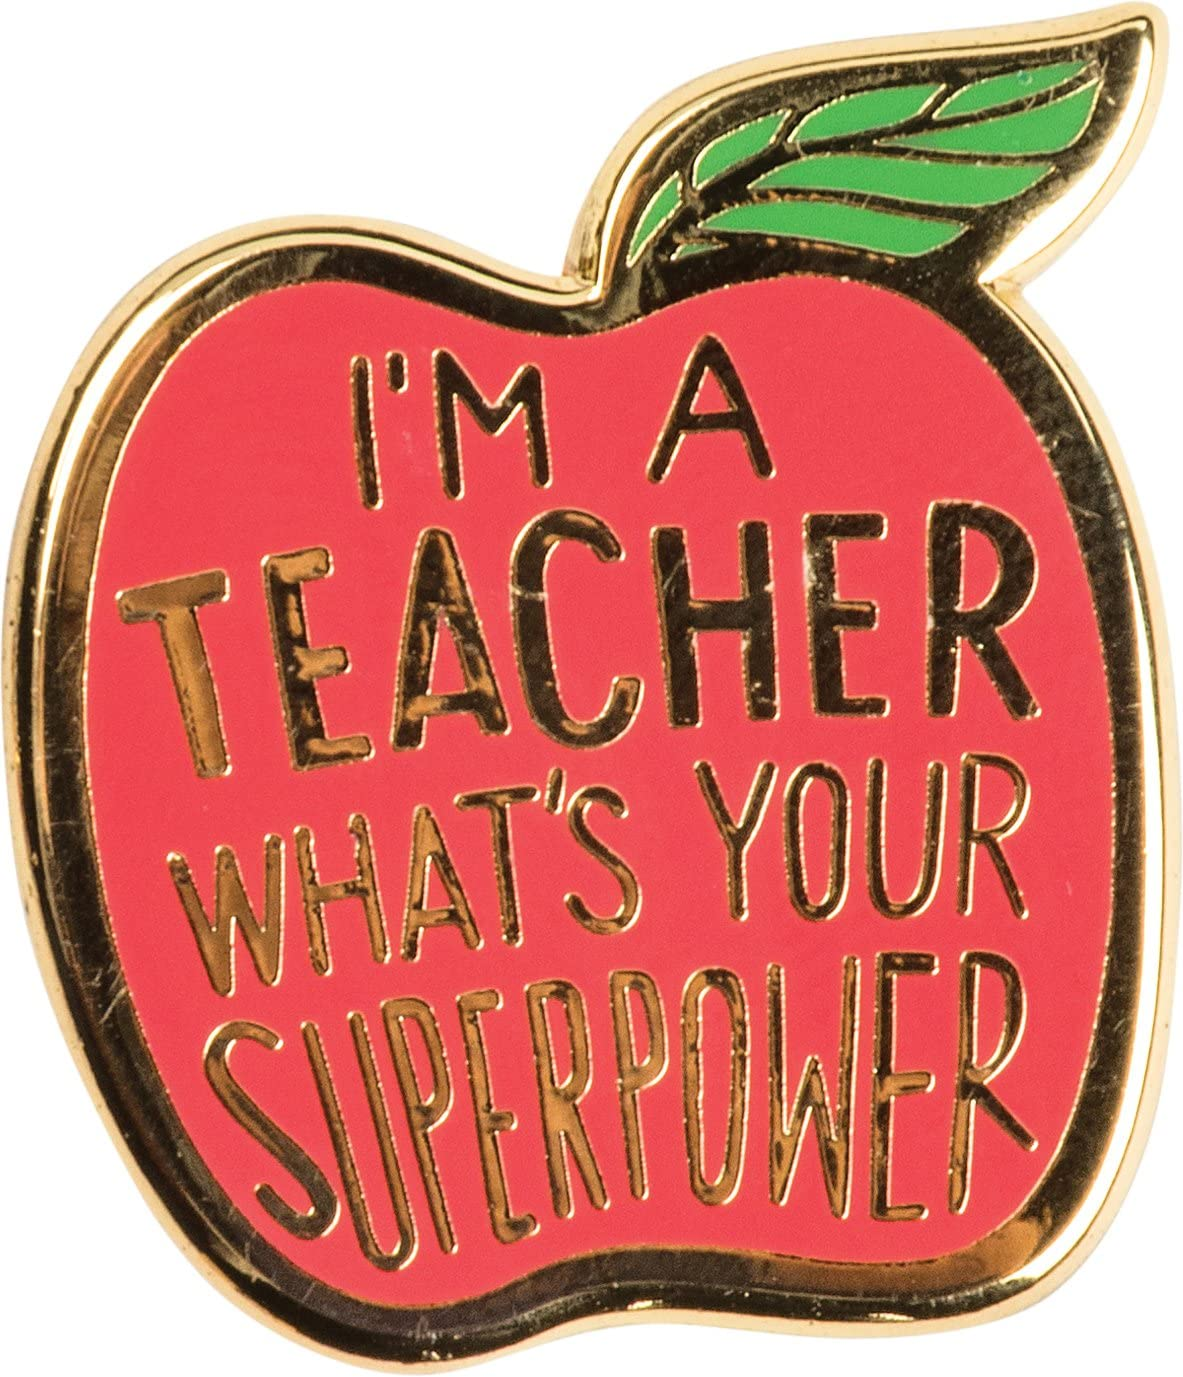 LOL Enamel Pin - Teacher, What's Your Superpower